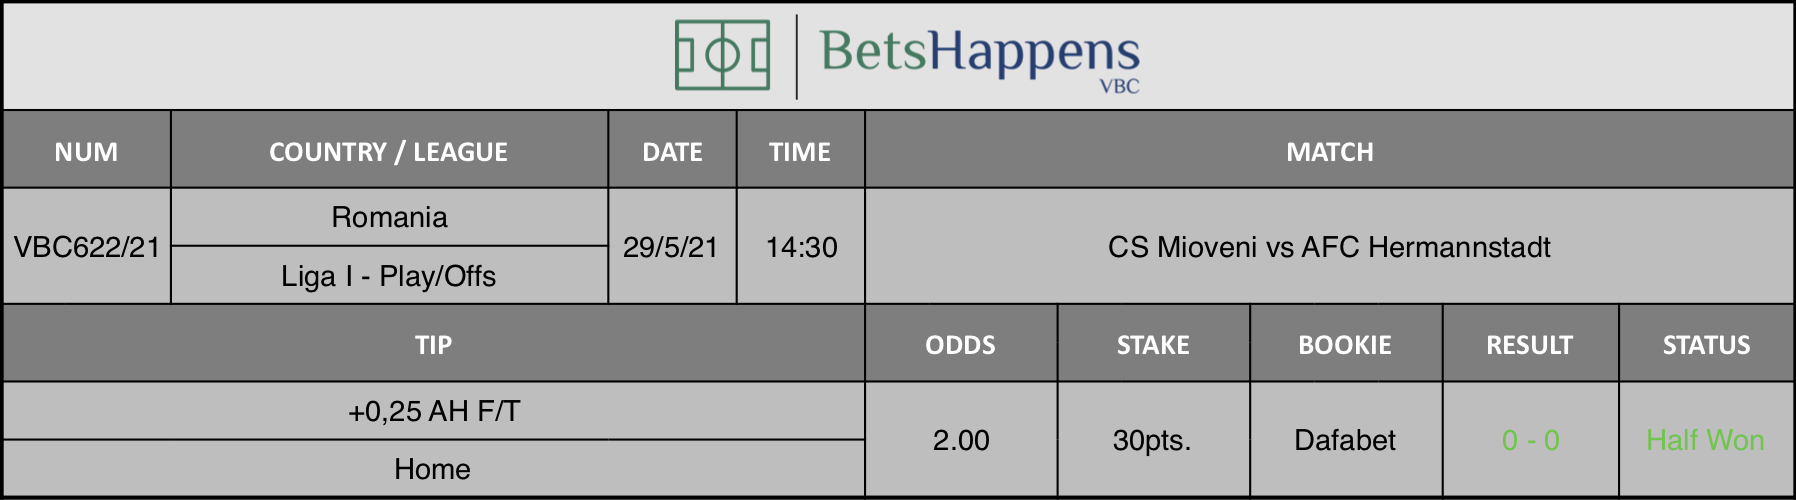 Results of our tip for the CS Mioveni vs AFC Hermannstadt match where +0,25 AH F/T  Home is recommended.